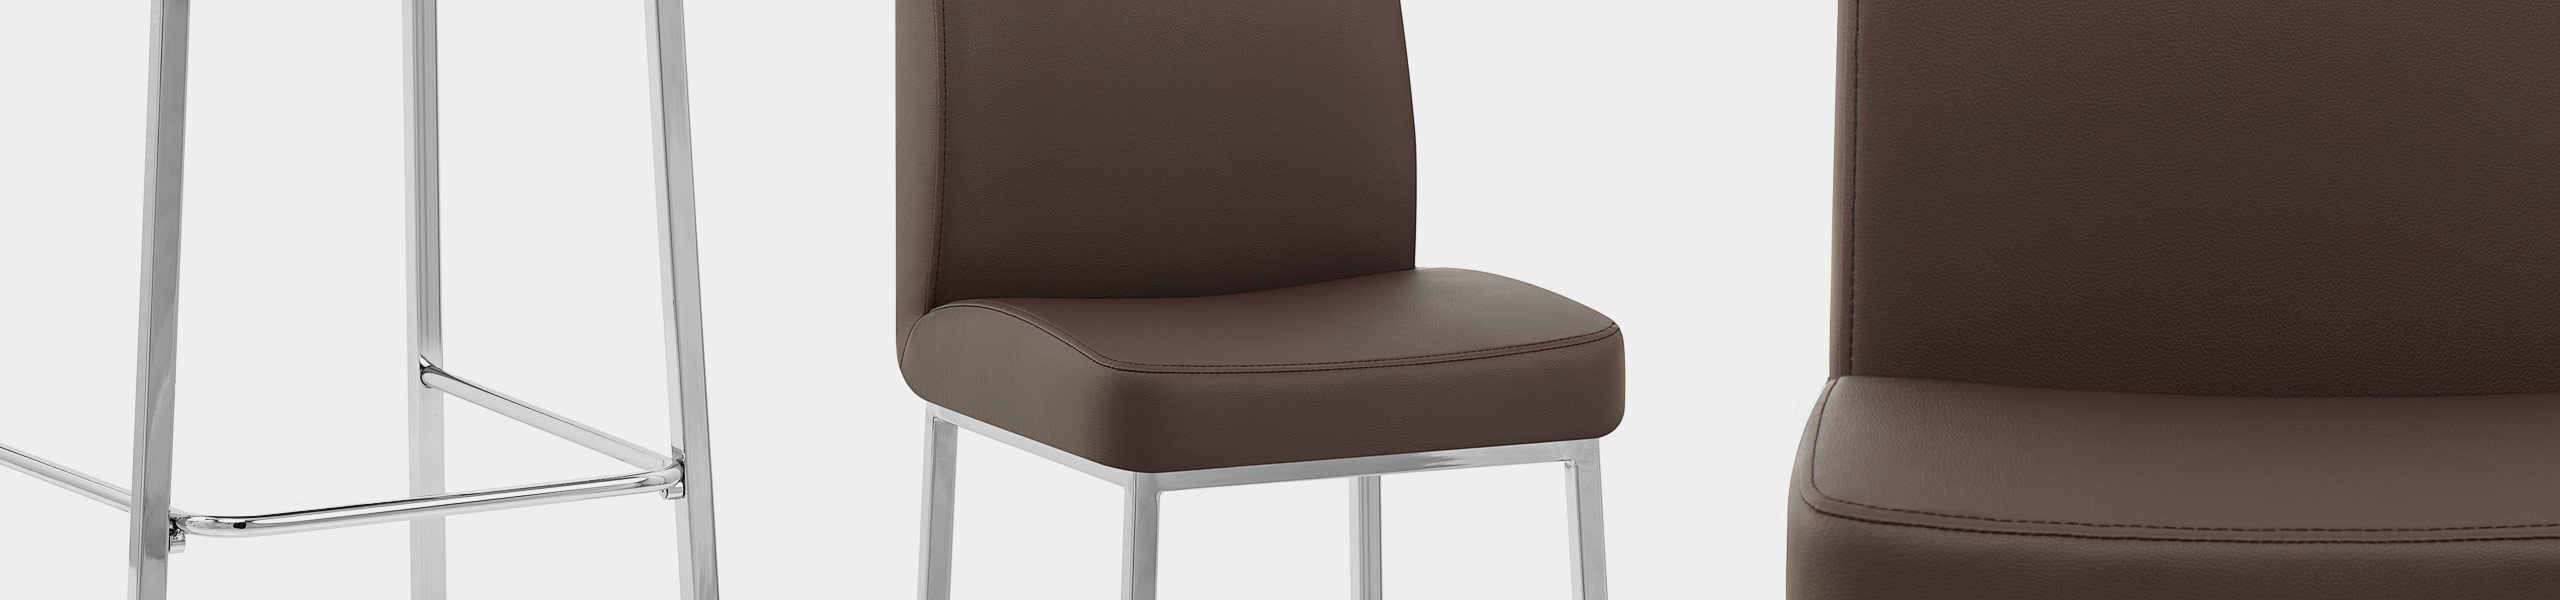 Pacino Stool Brown Video Banner